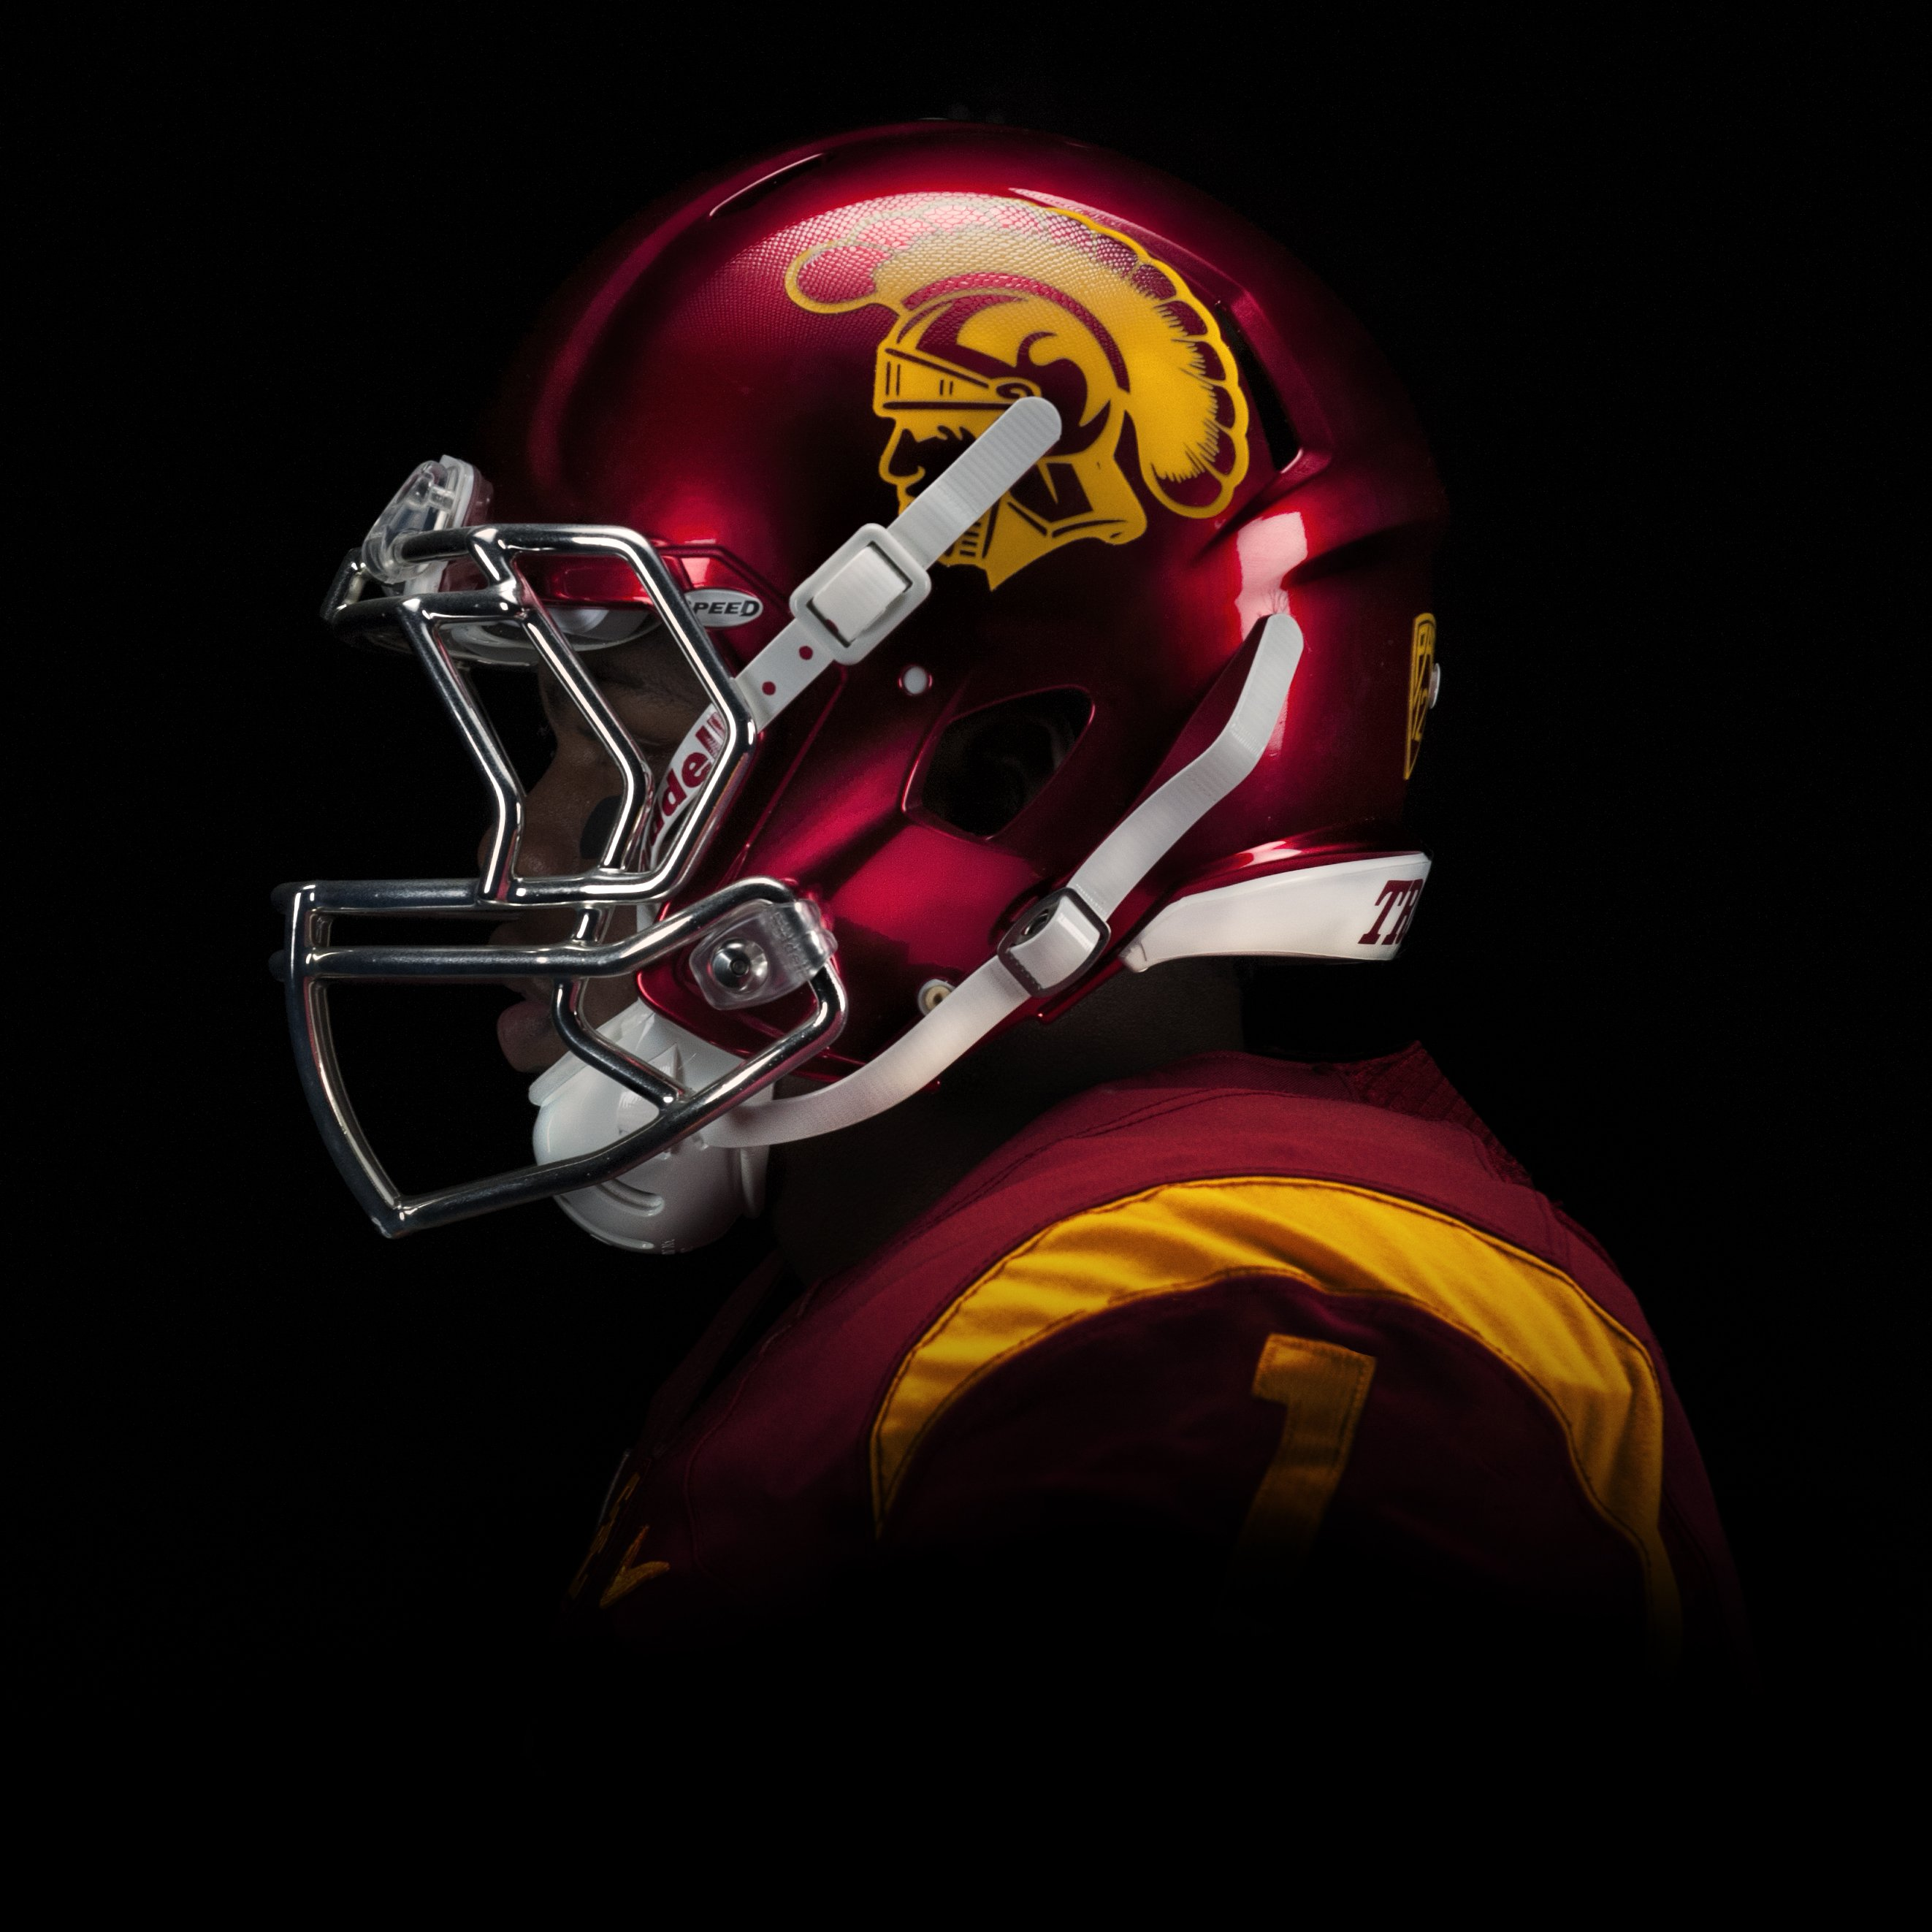 Mobile Usc Trojans Football Wallpaper | Full HD Pictures